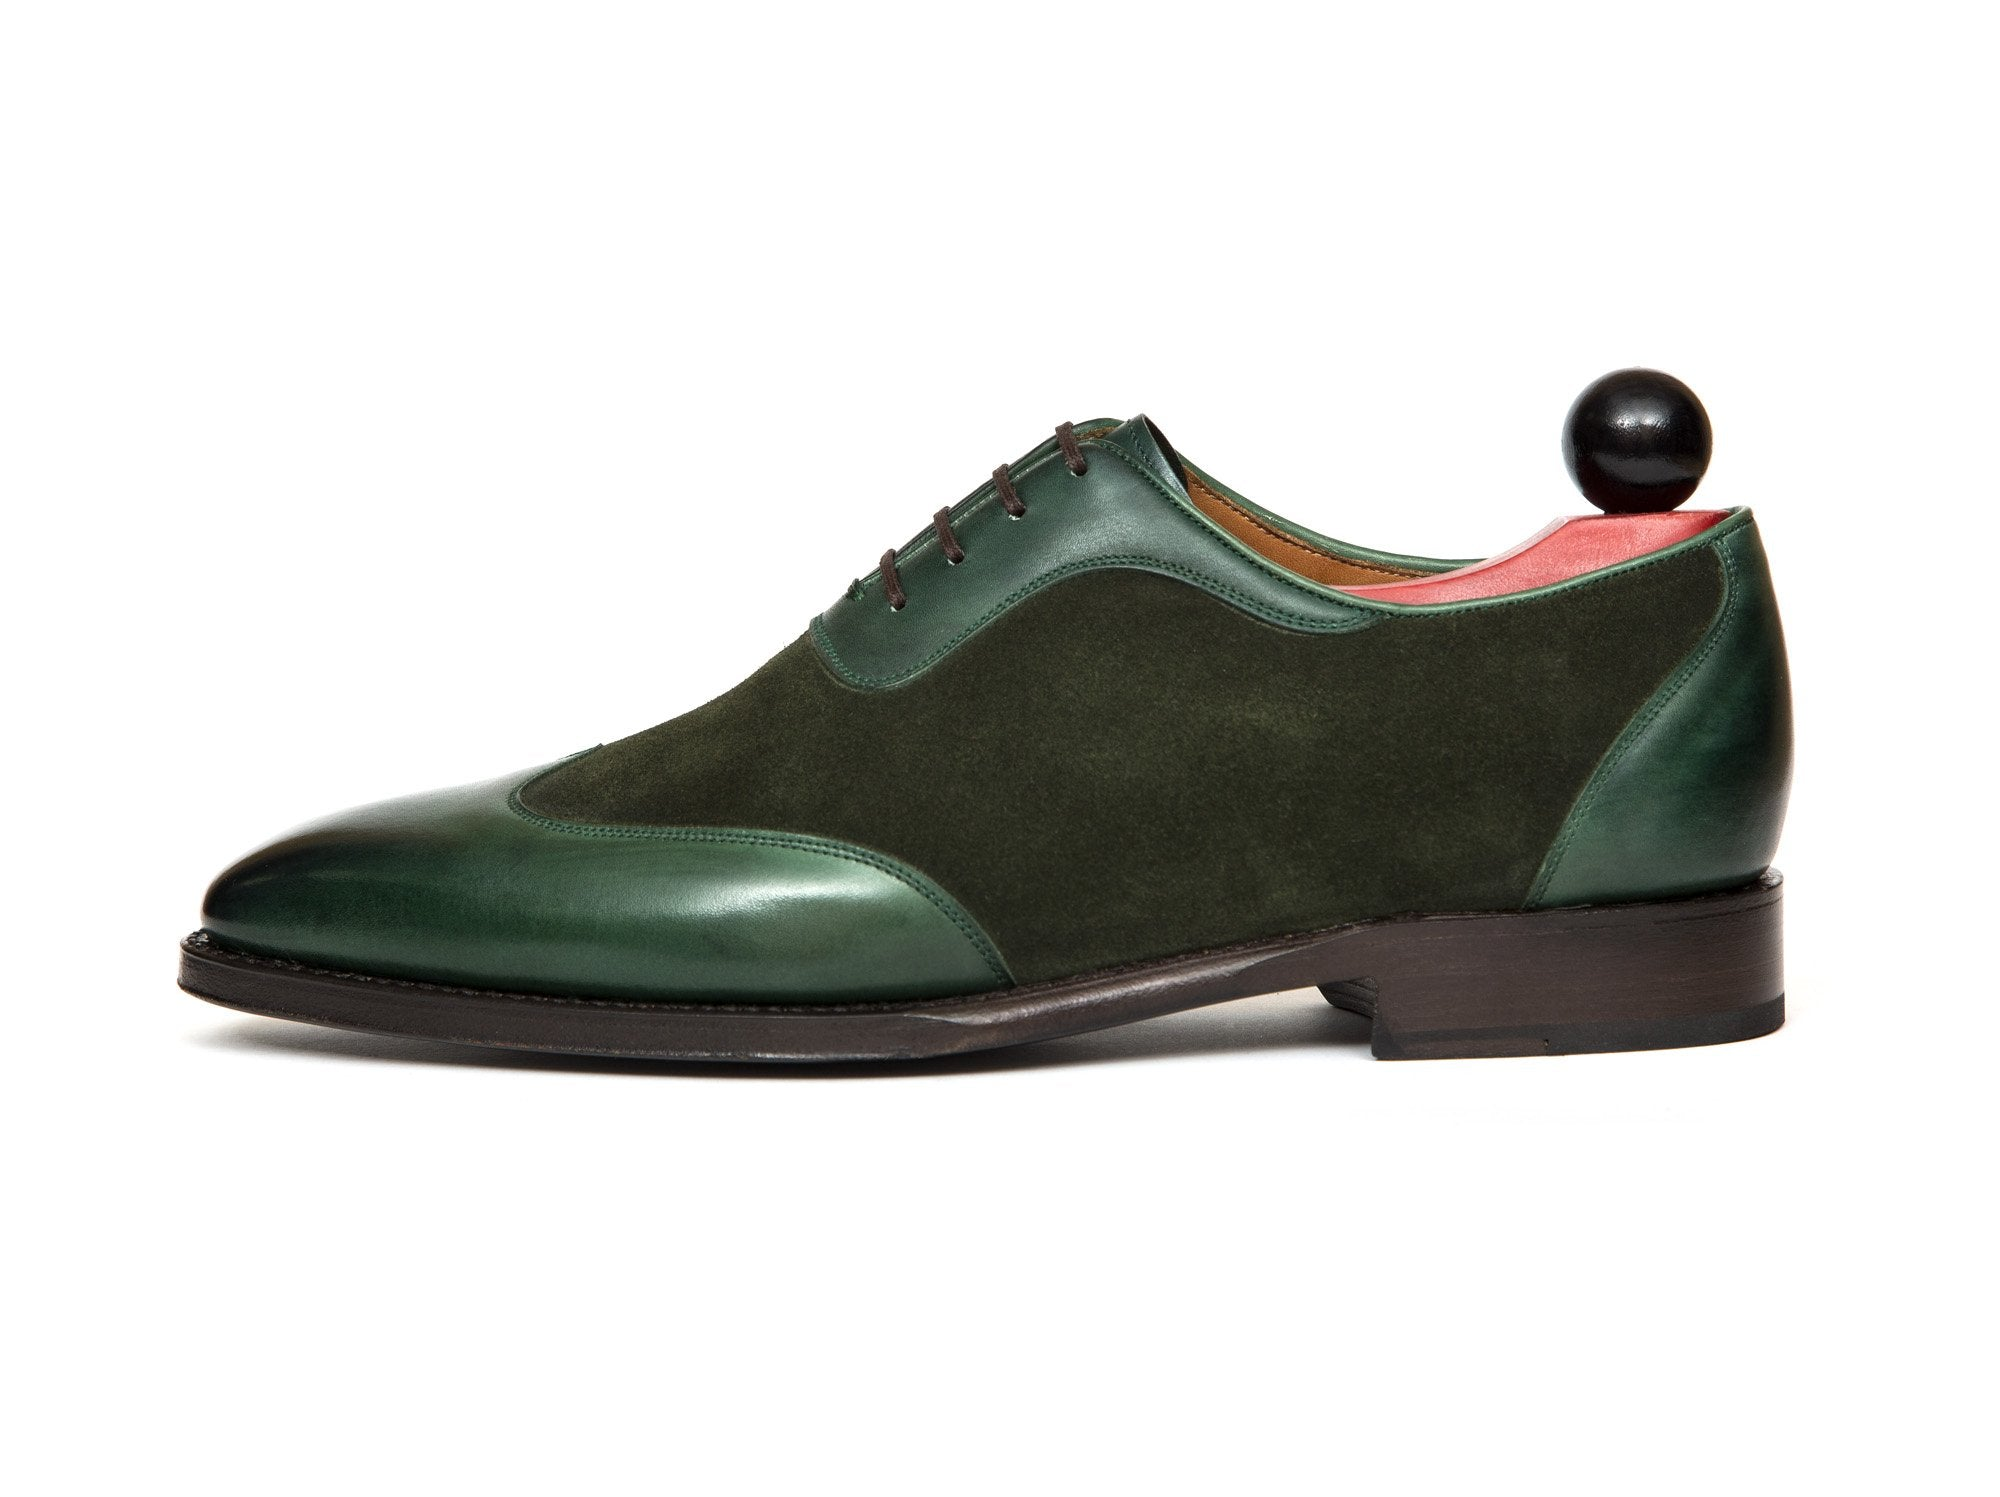 J.FitzPatrick Footwear - Rainier - Forest Green Calf / Bottle Green Suede - LPB Last